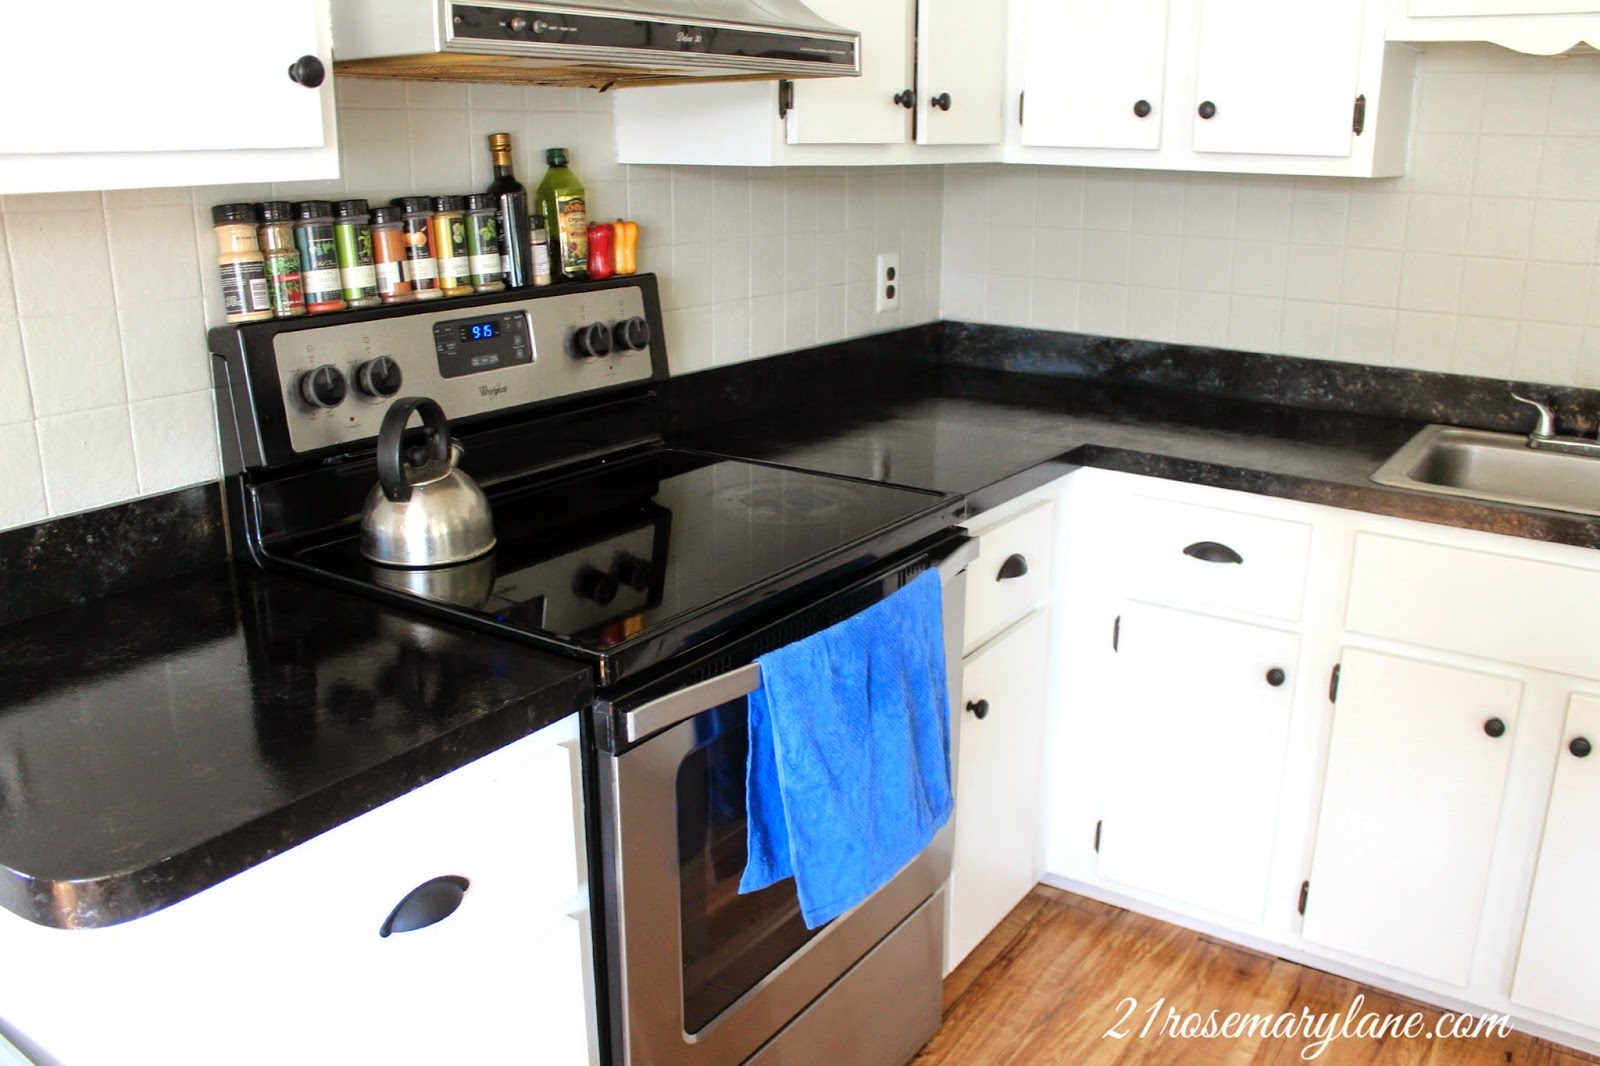 ... : Transformation of a 1970s Formica Countertop into a Granite Beauty